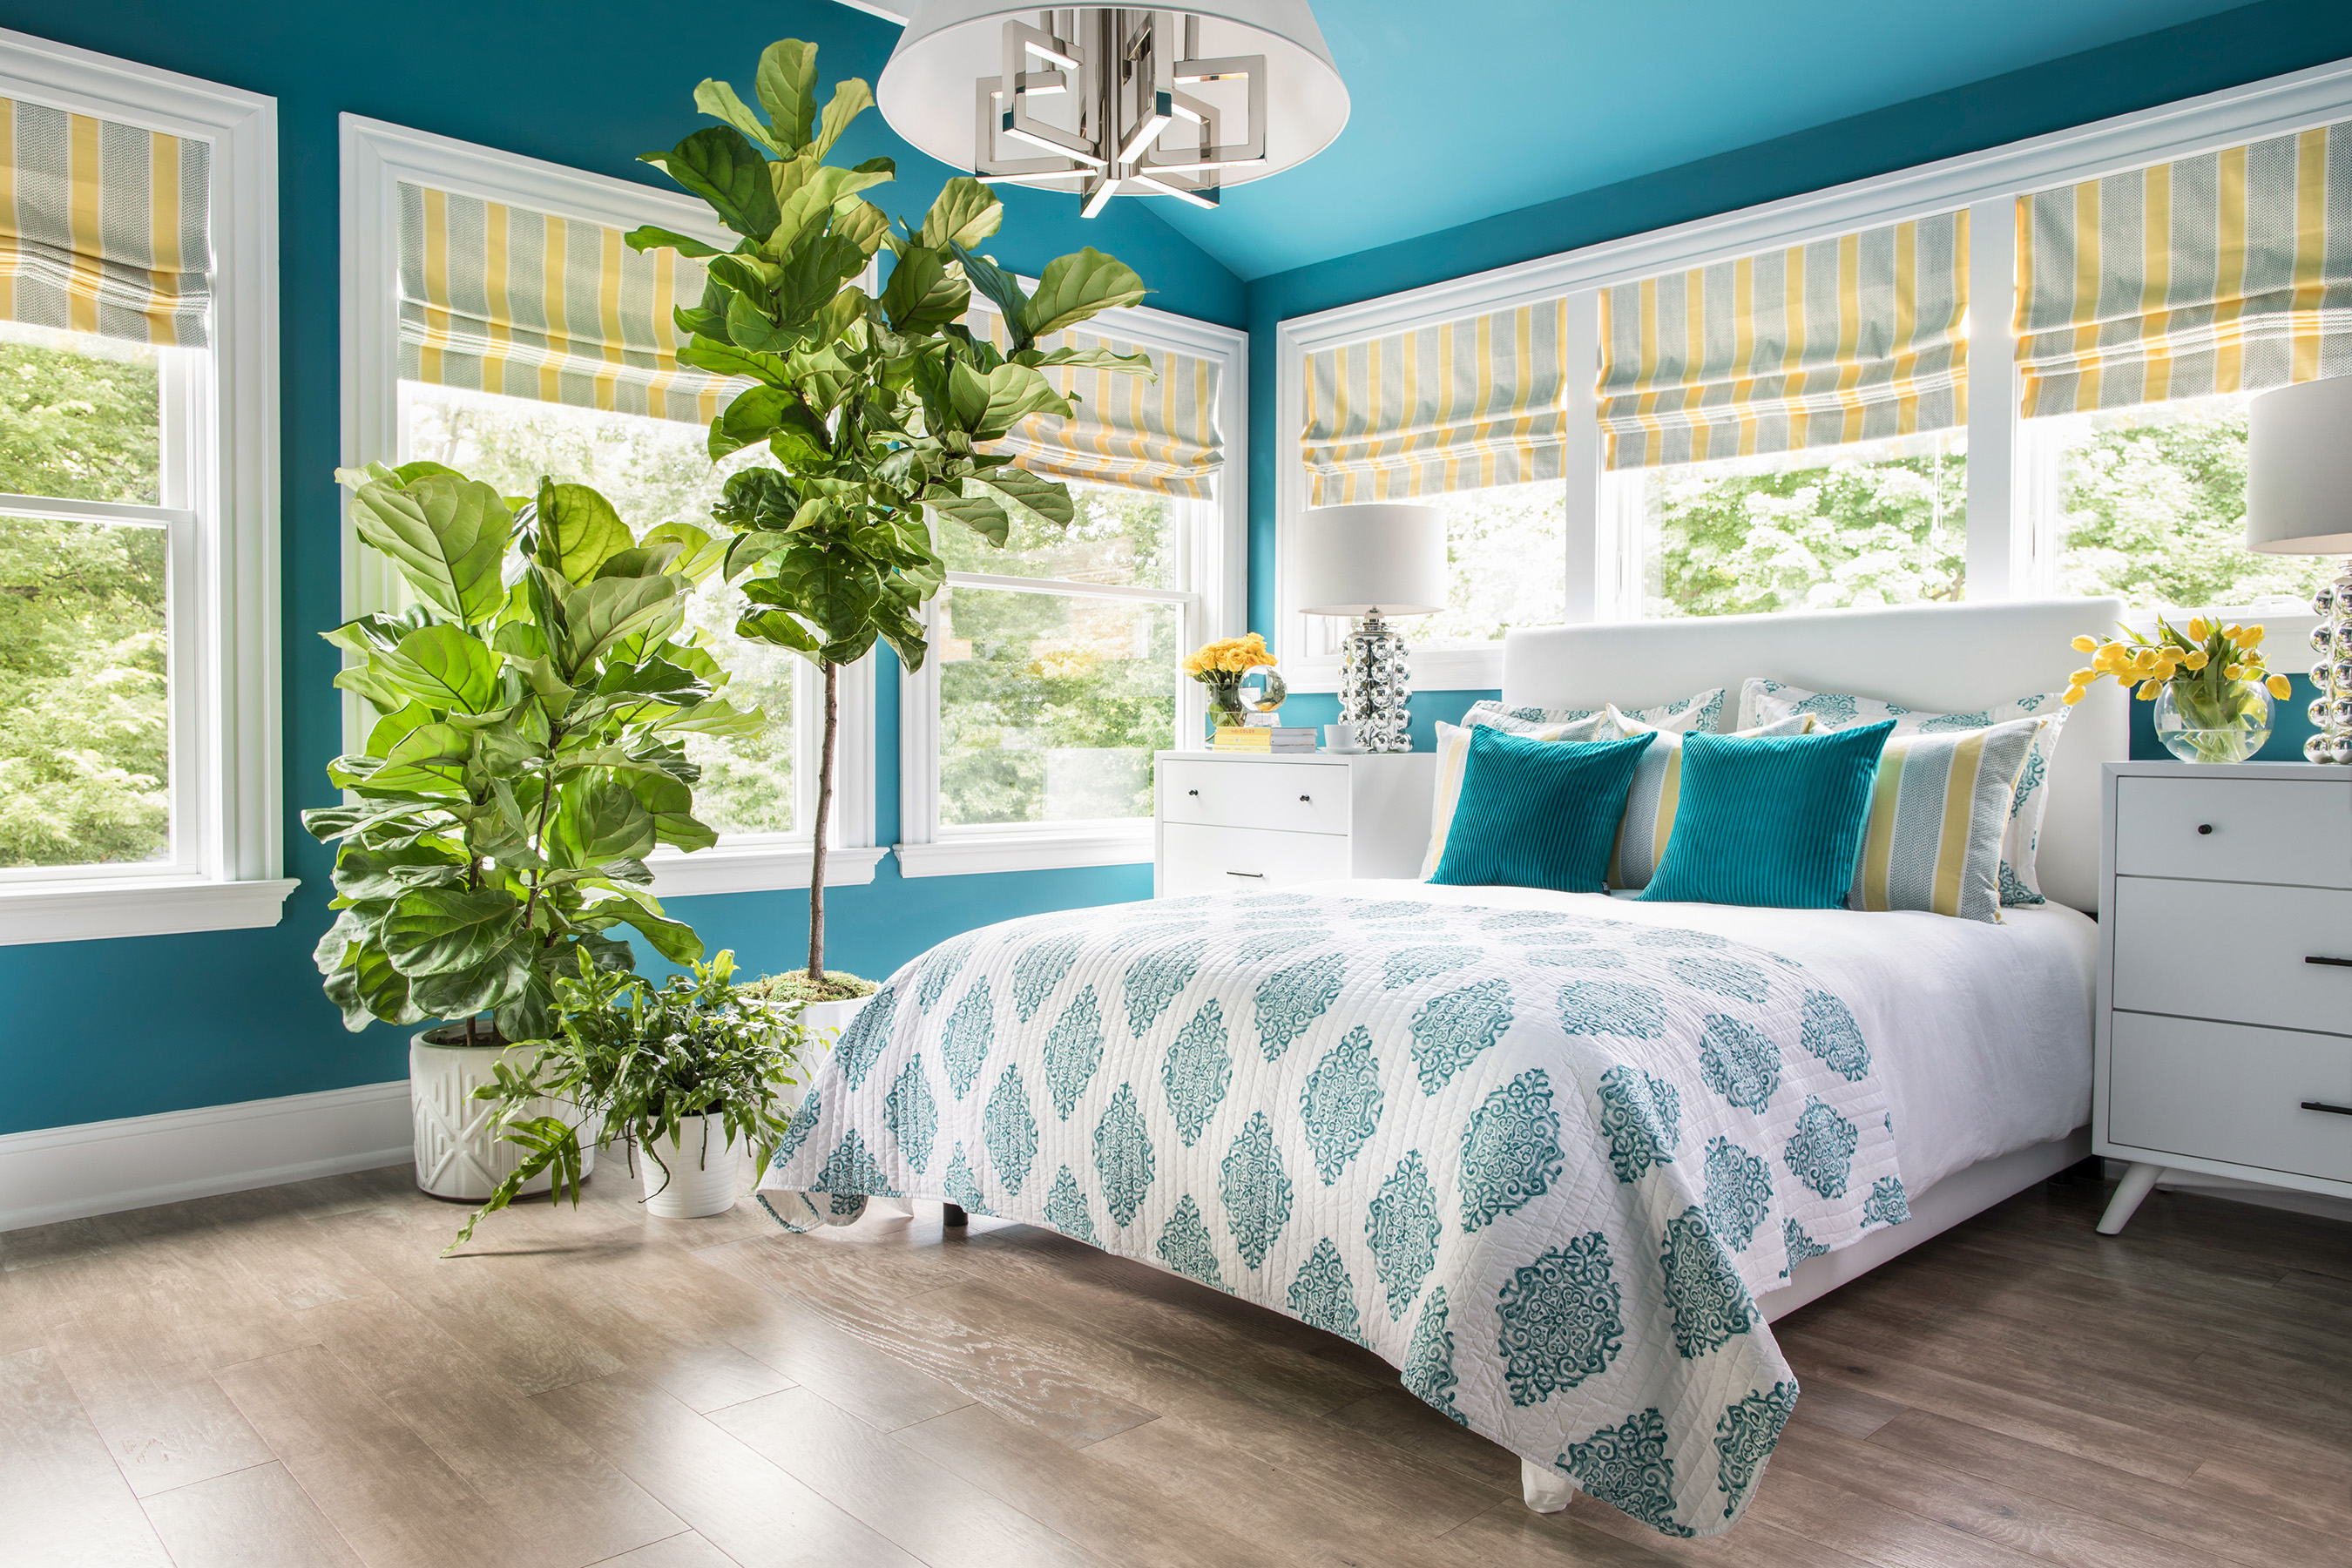 Take a Virtual Tour of HGTV Urban Oasis 2018 Located in Cincinnati, Master Bedroom Decorating Hgtv Html on hgtv guest bedroom decorating, hgtv master bathroom, hgtv bedroom colors, better homes and gardens master bedroom decorating, hgtv master bedroom paint, hgtv master bedroom inspiration,